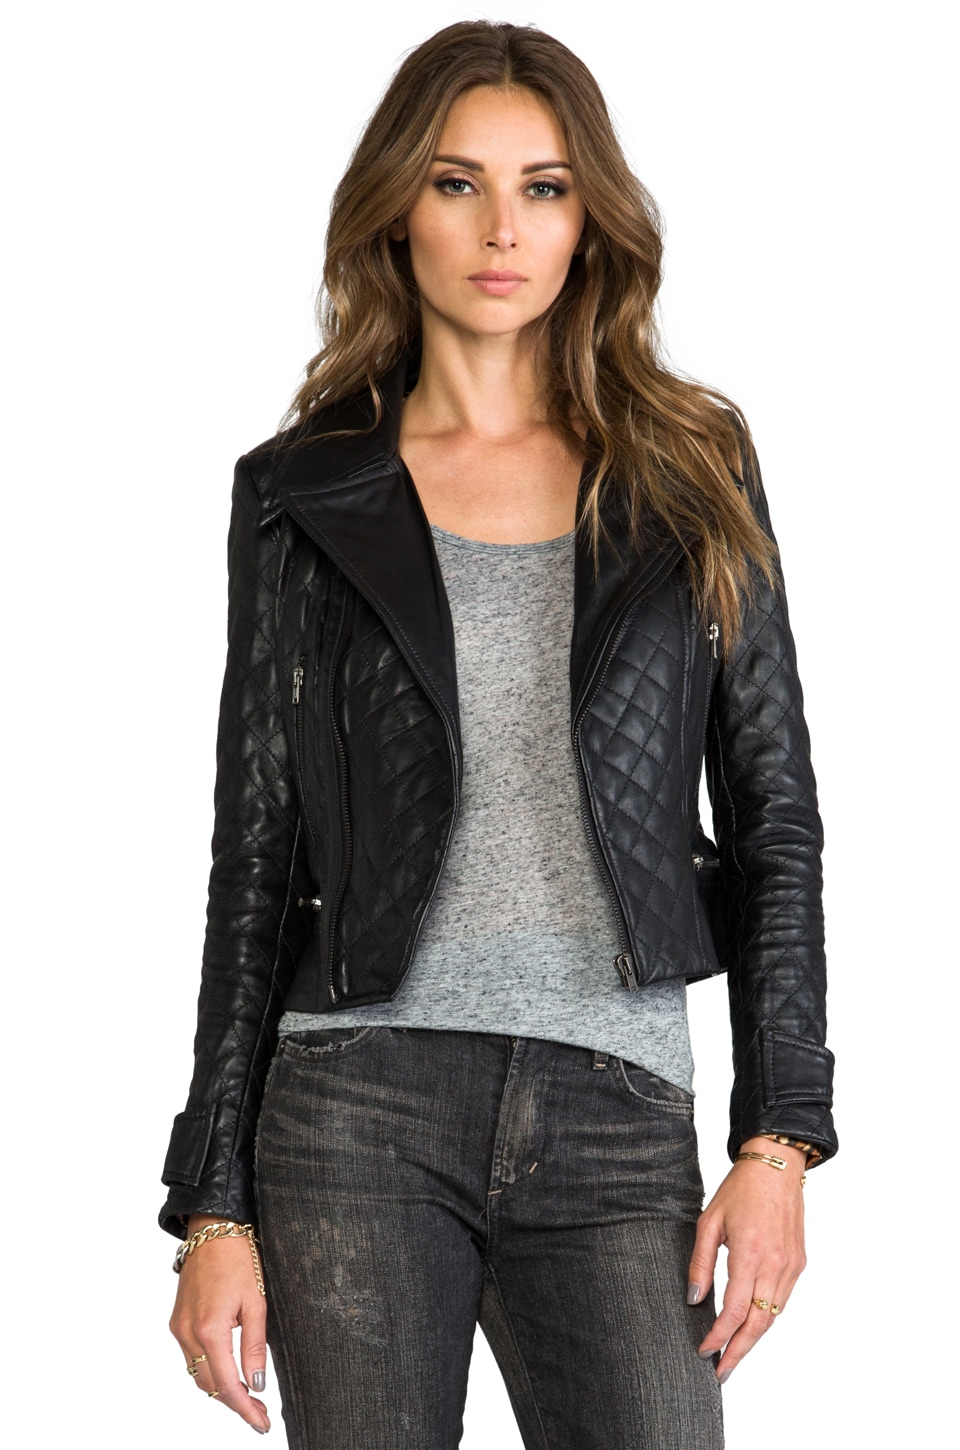 KENNA-T Quilt Moto Jacket in Black